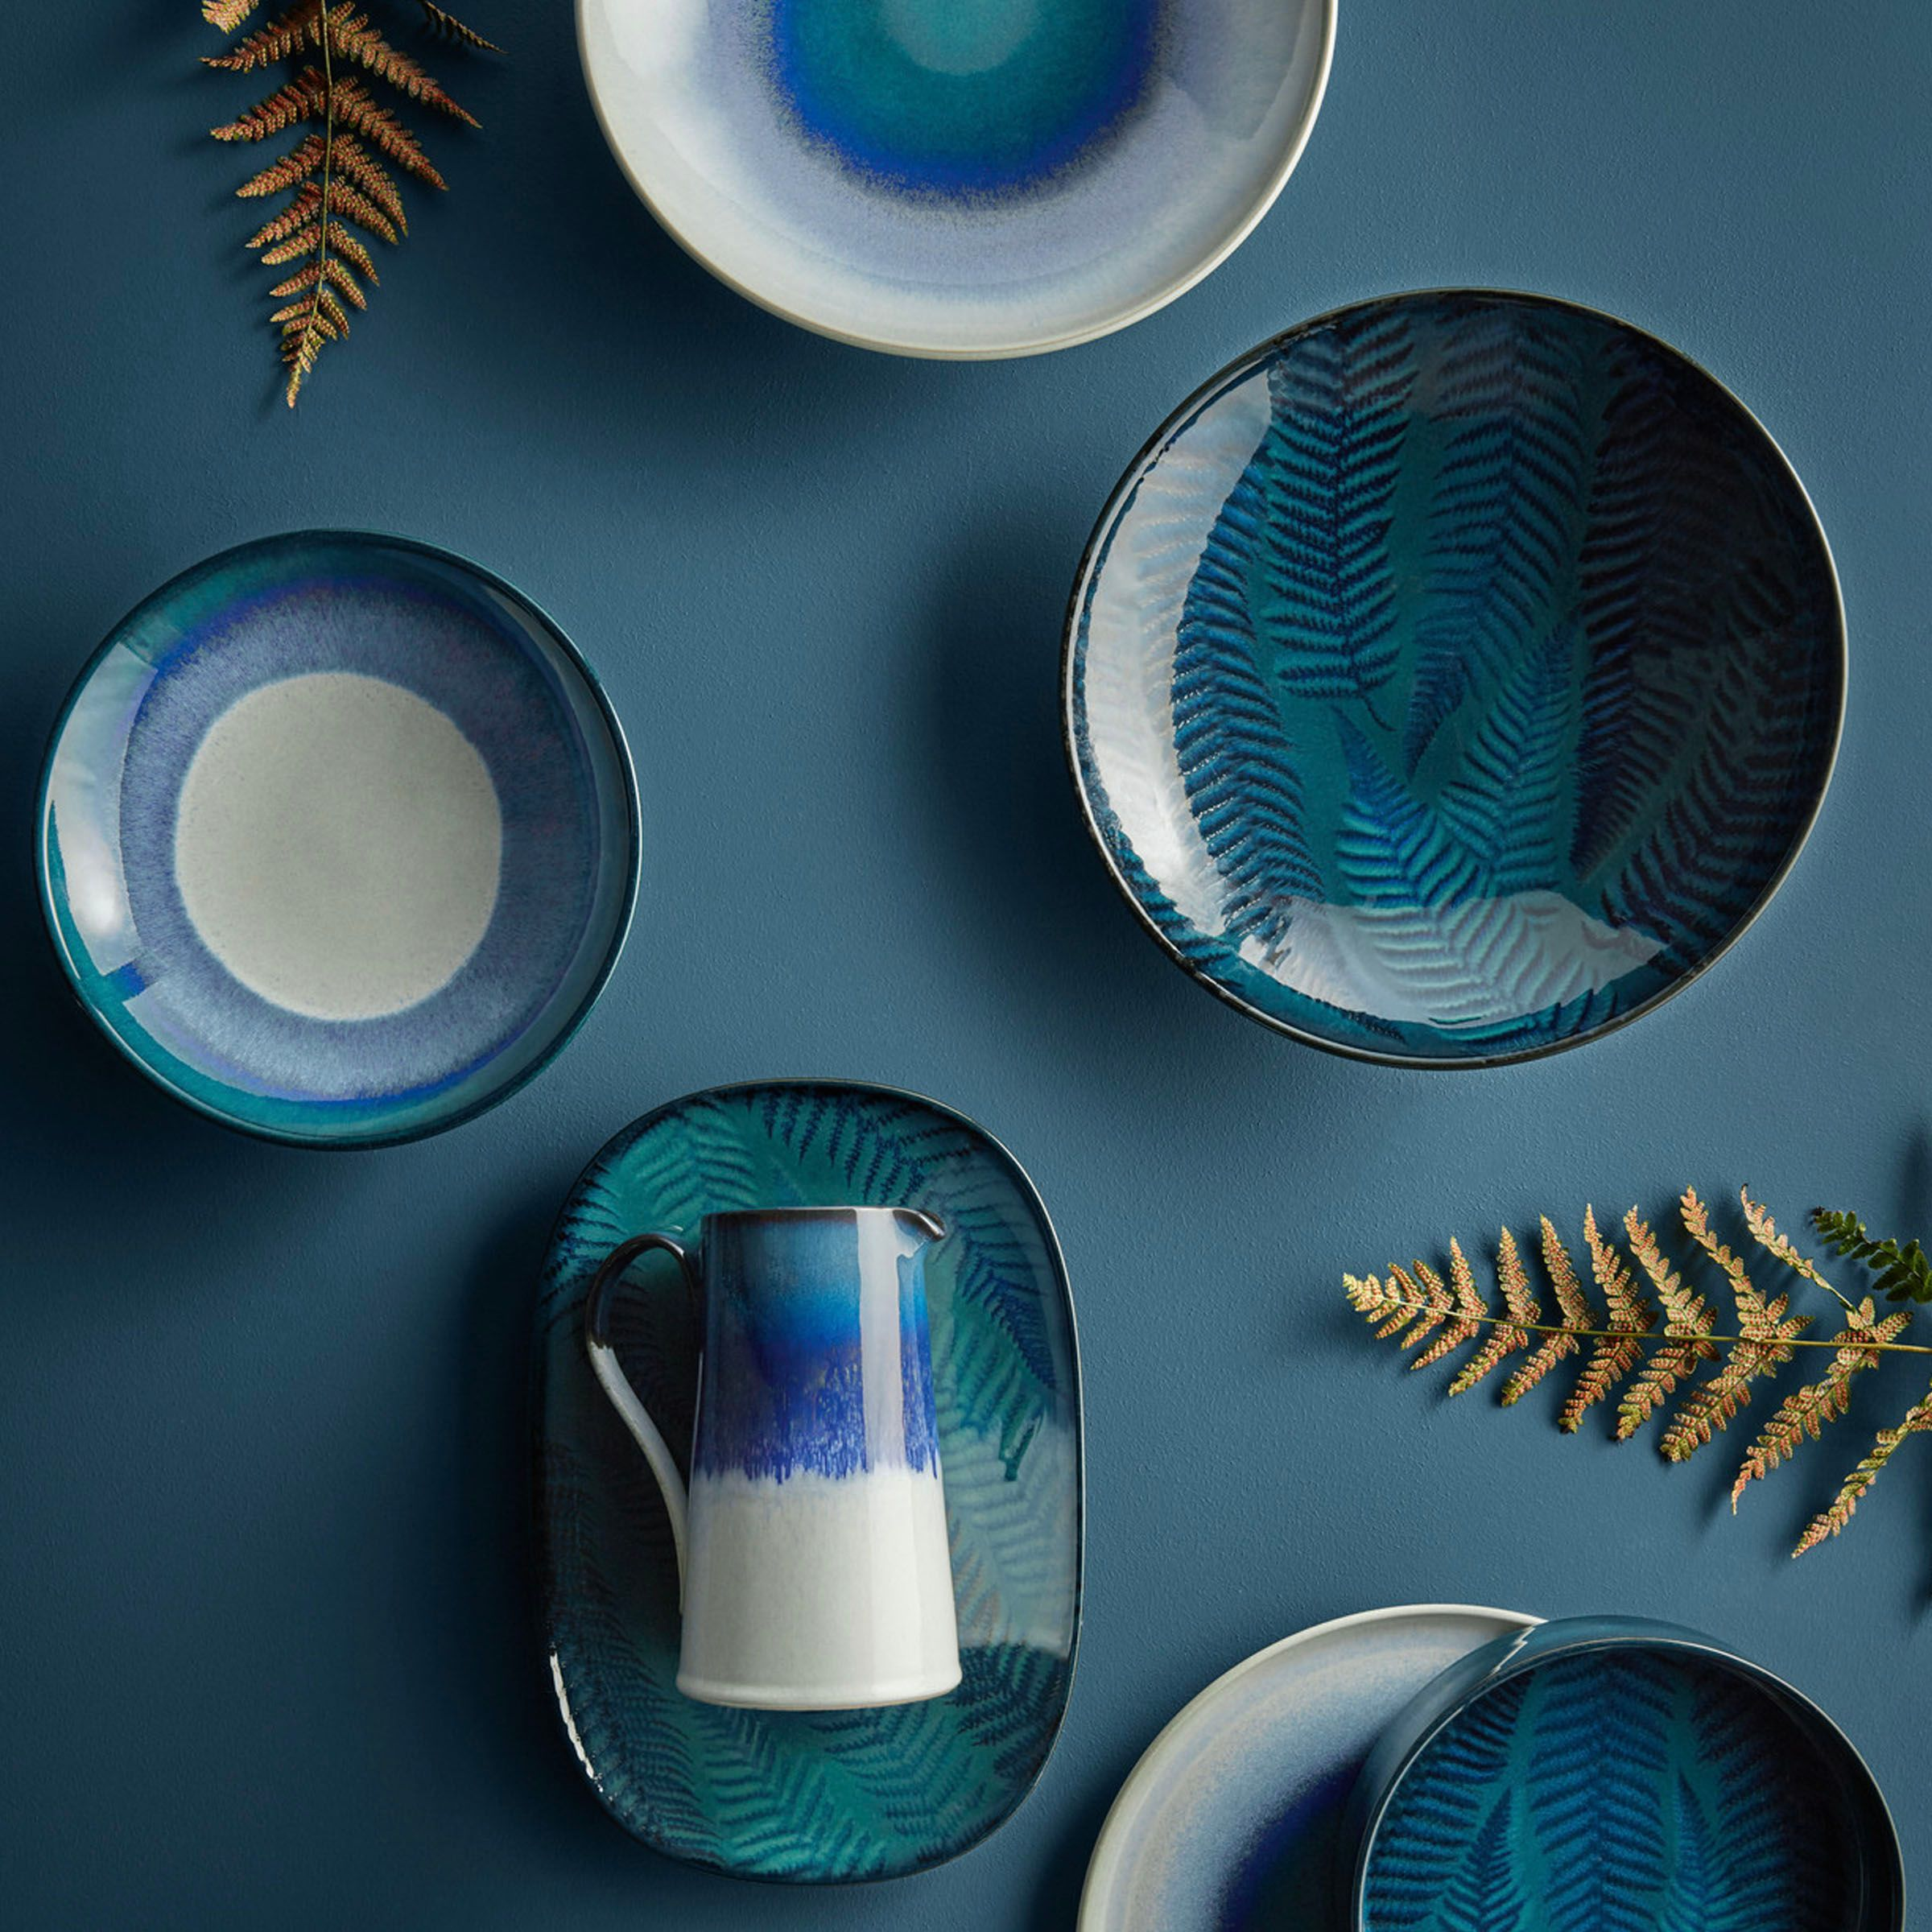 New Season Tableware